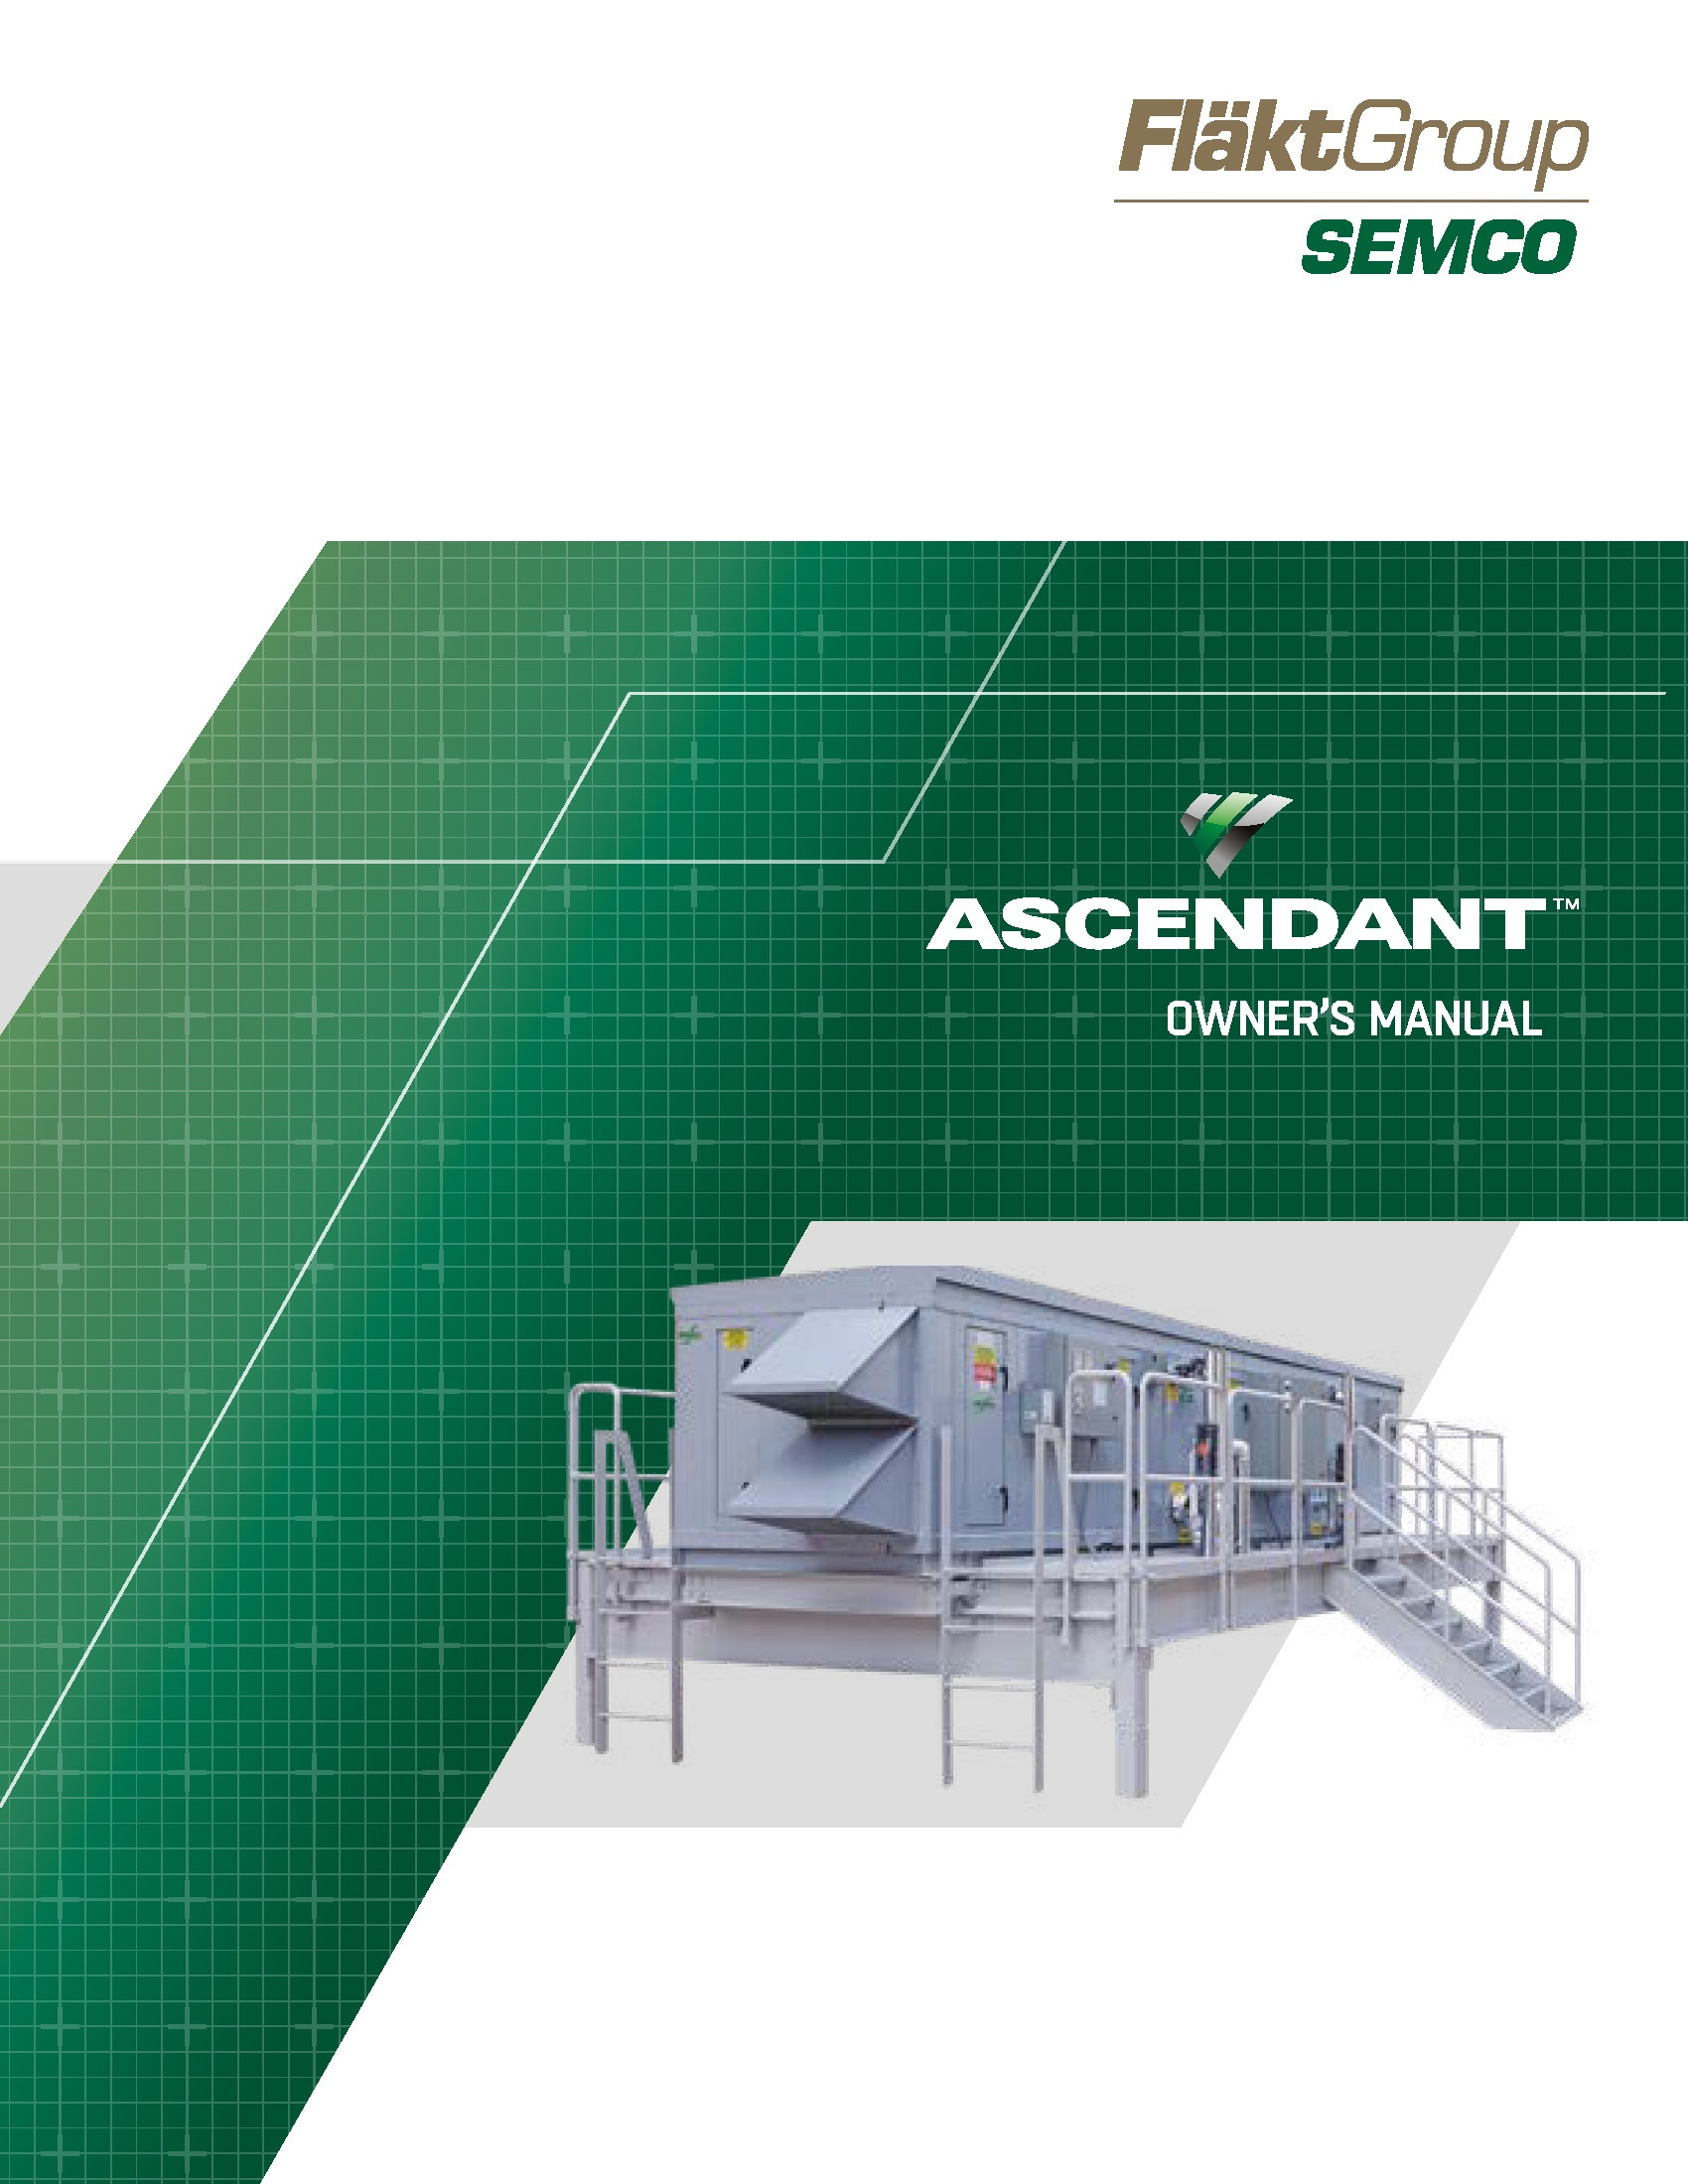 ASCENDANT_Owners_Manual_-_SEMCO_2015-10.jpg